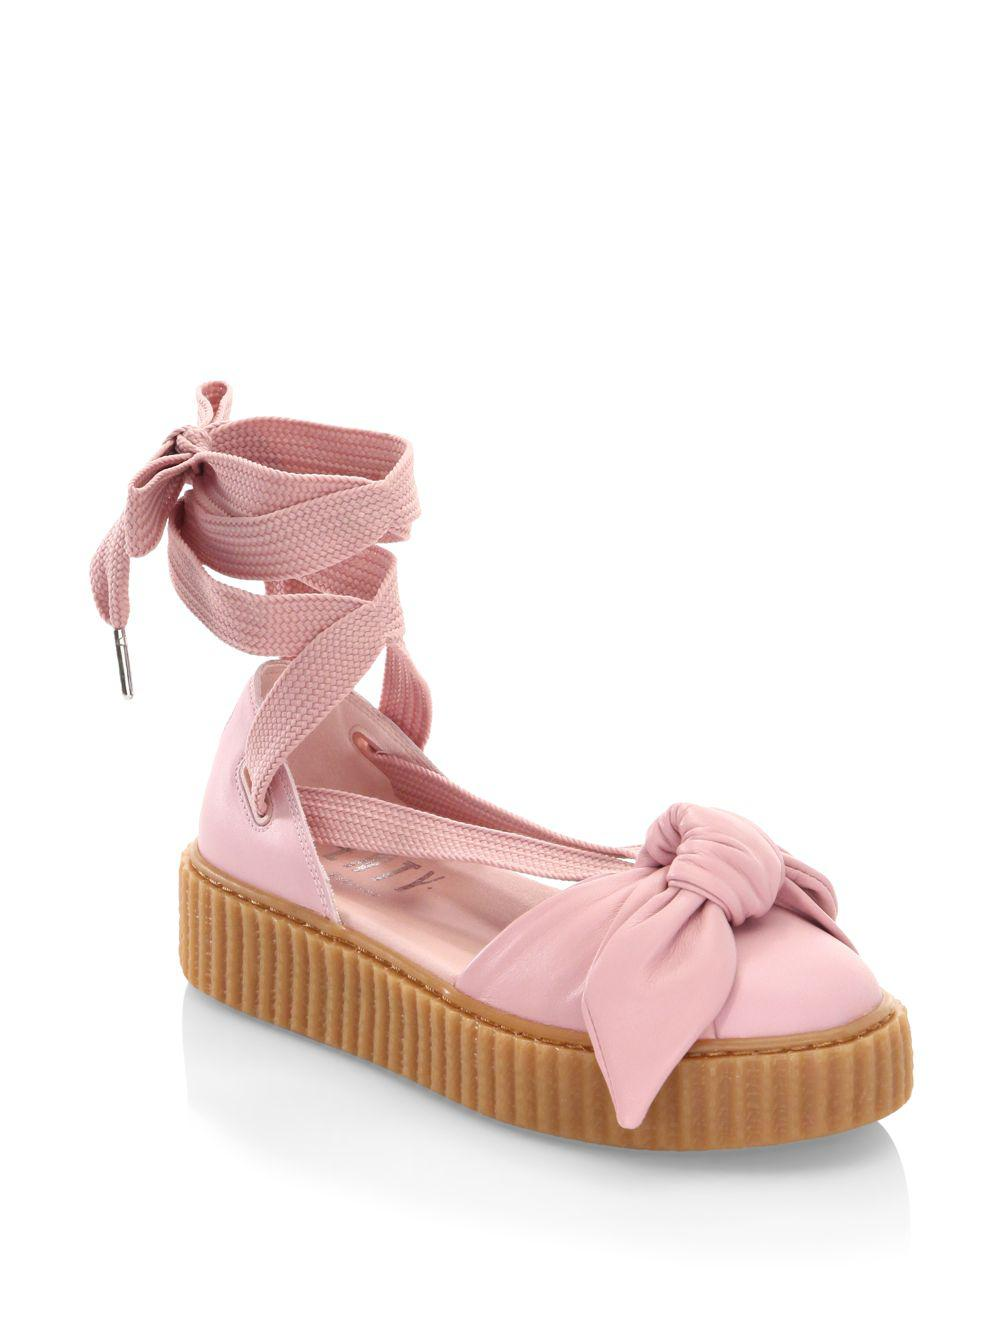 PUMA Bandana Leather Creeper Flats in Pink - Save 62% - Lyst 32998af86